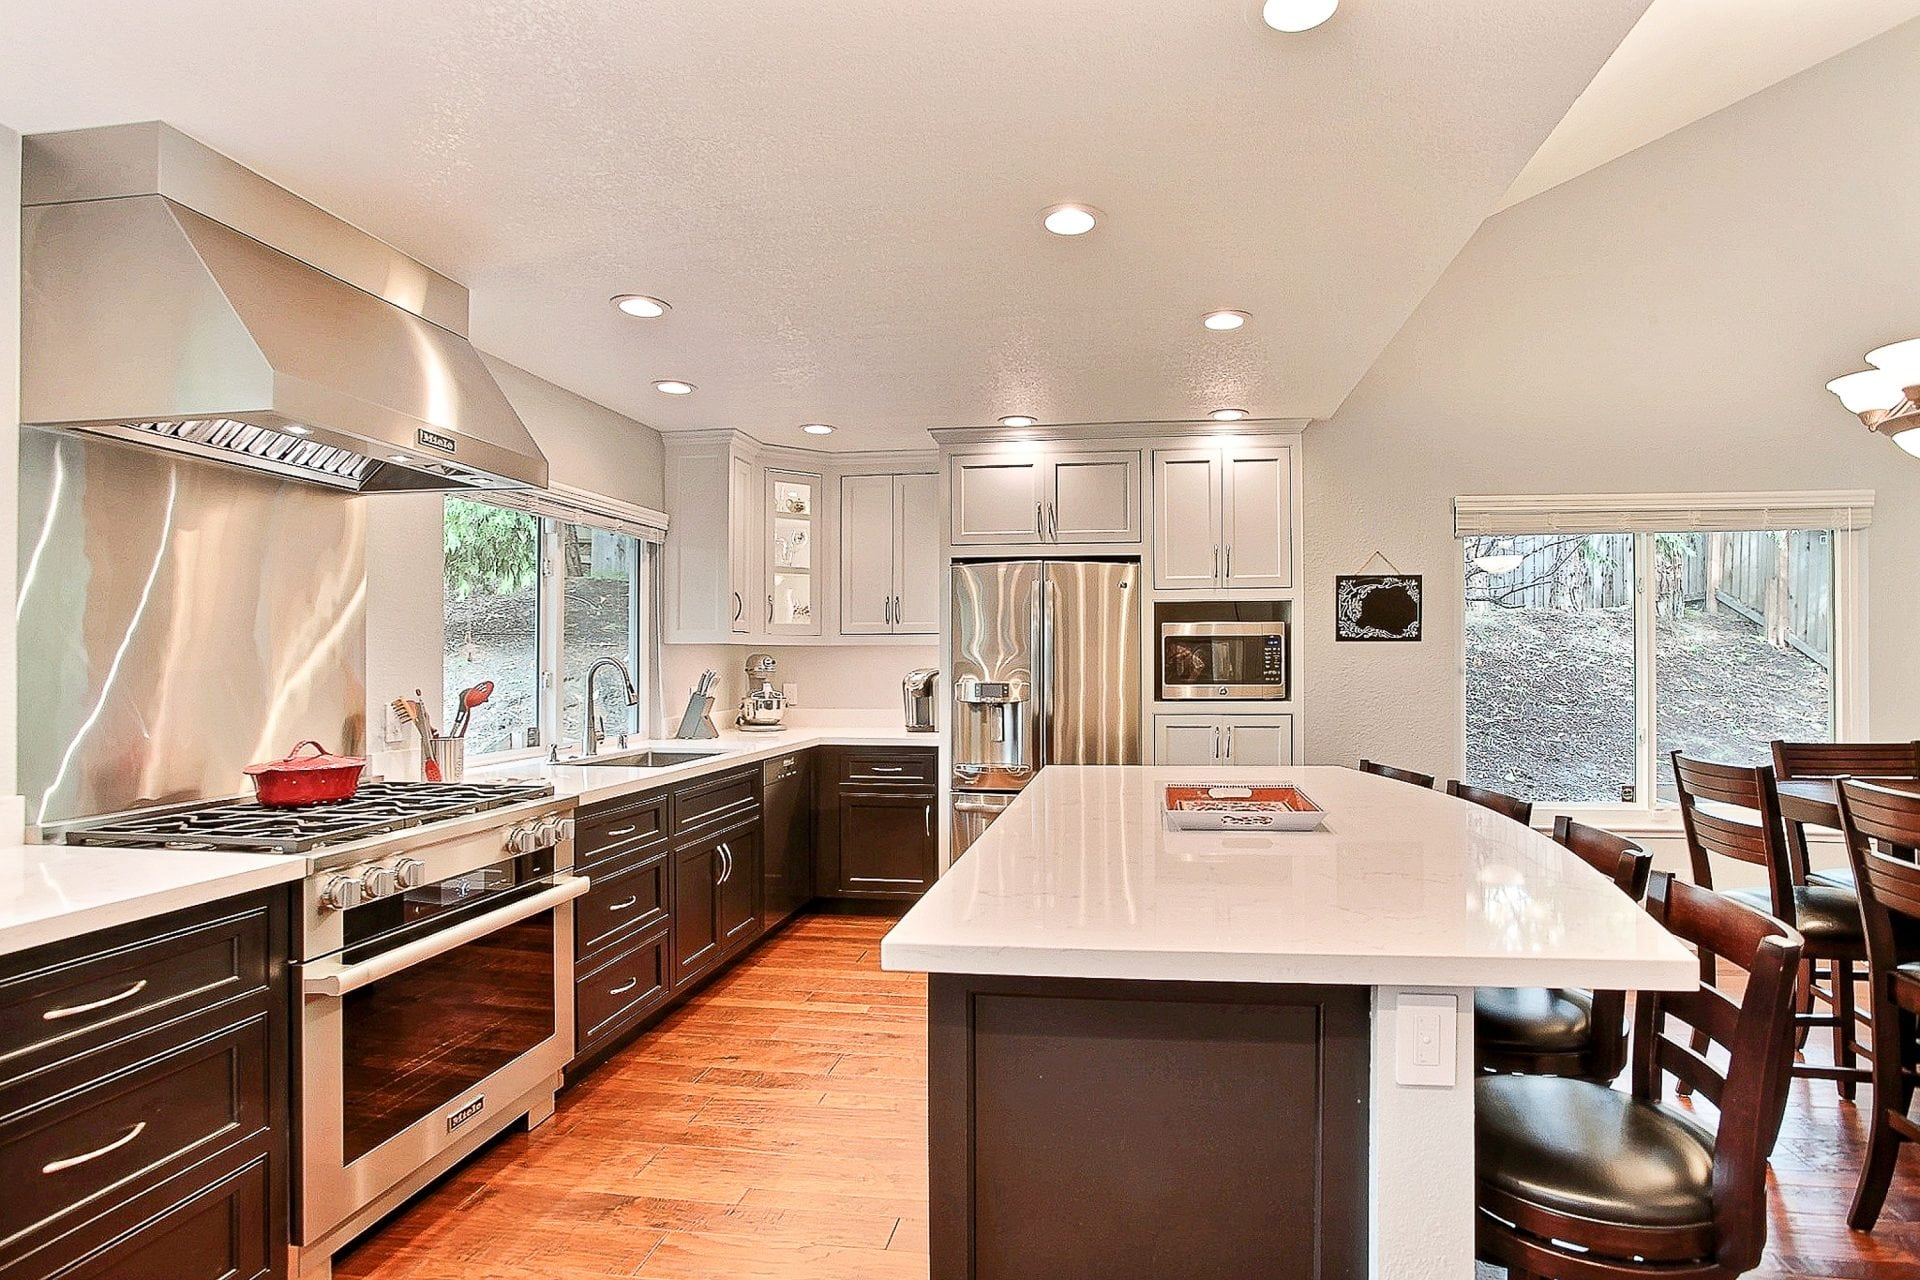 white granite counter tops